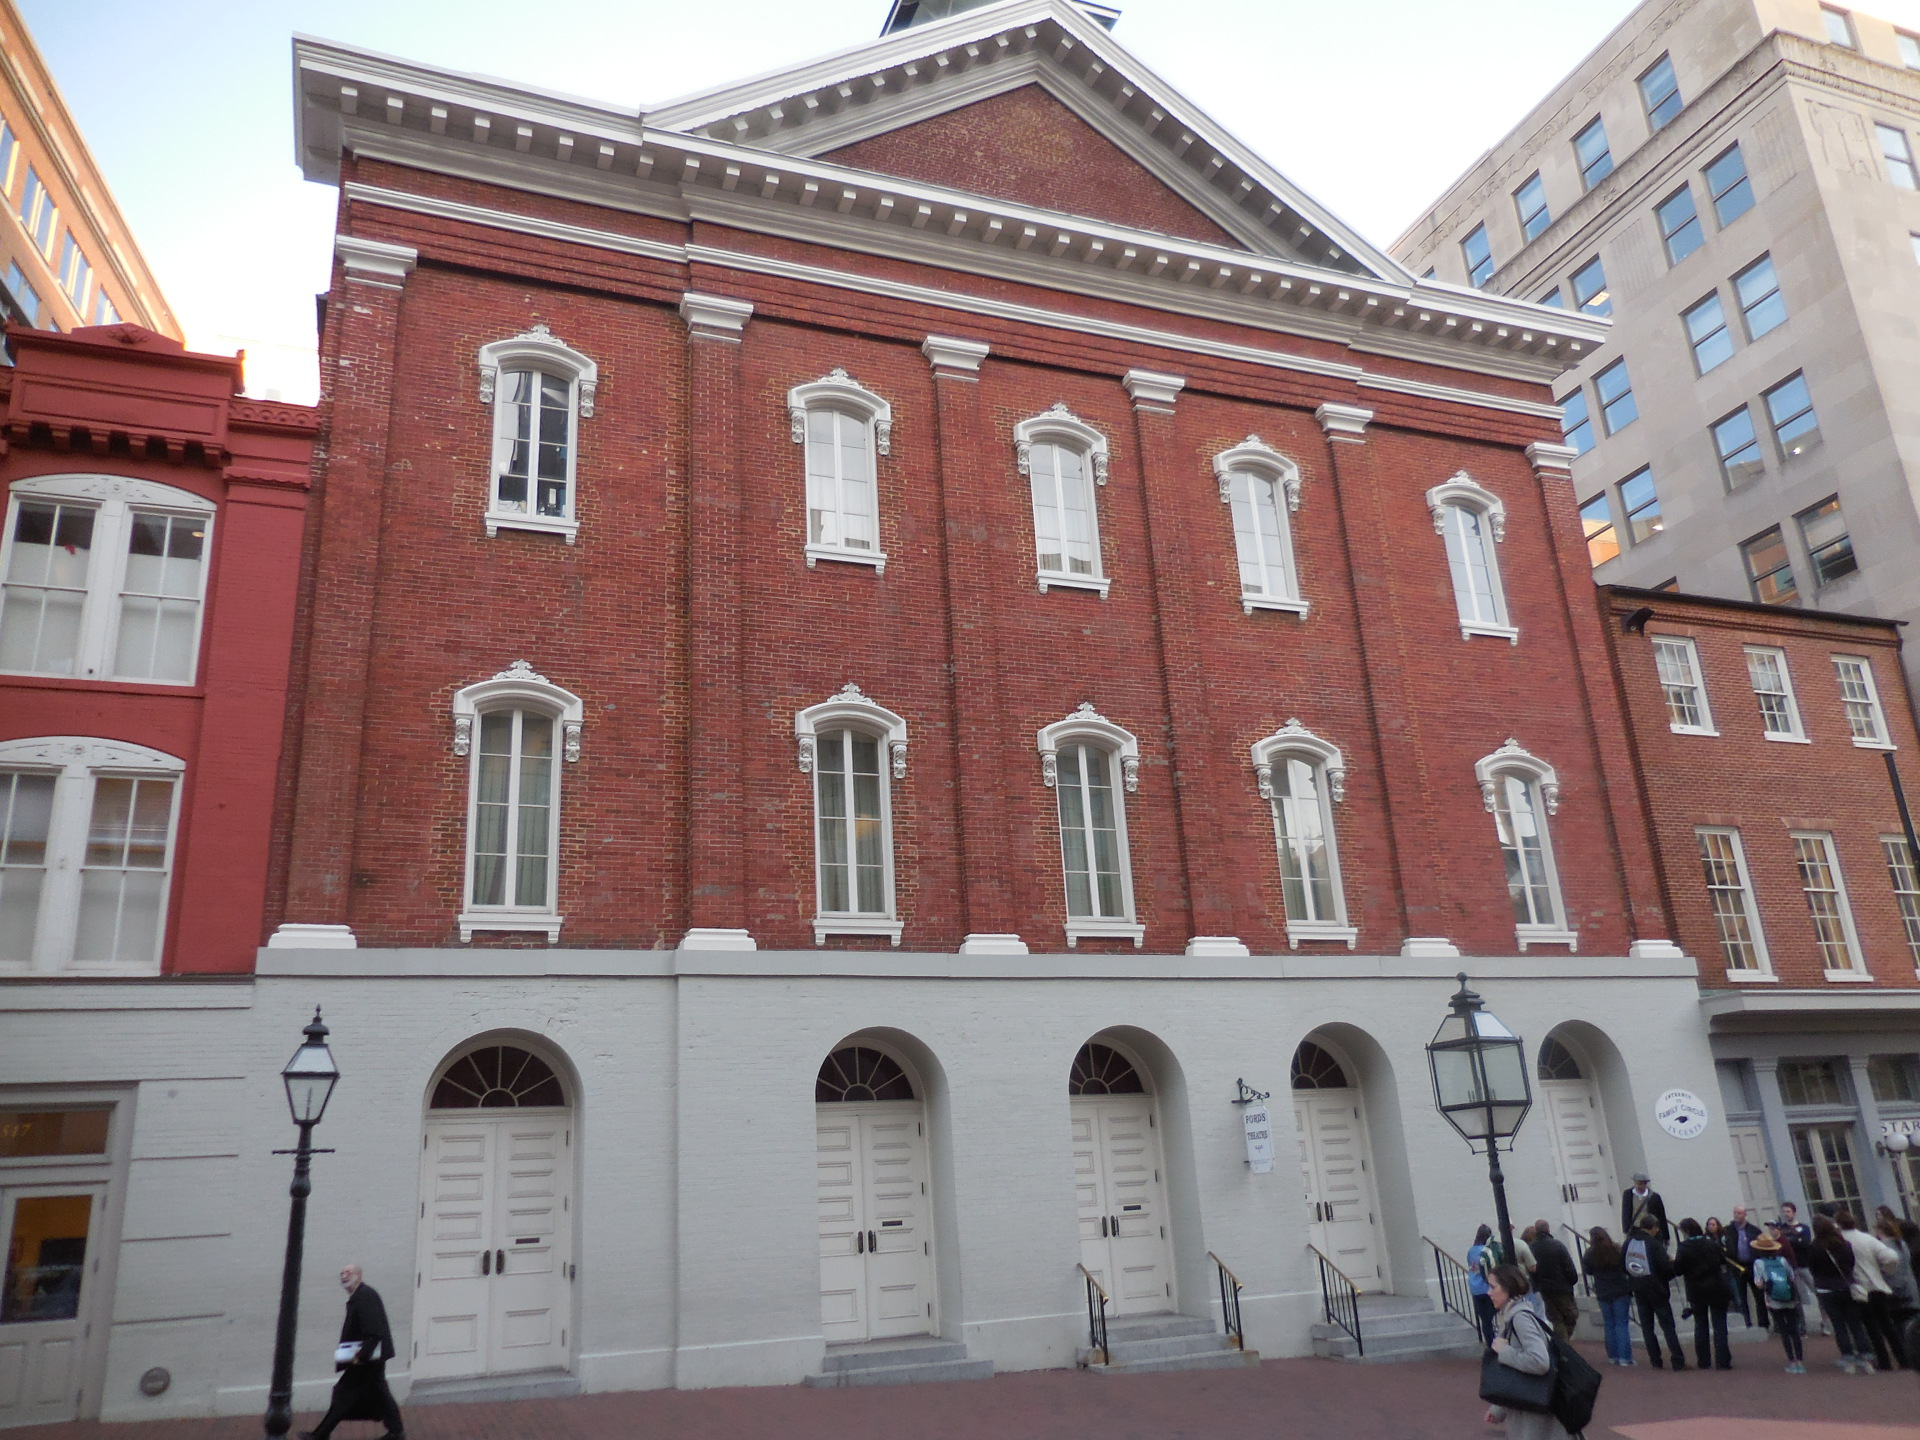 Ford's Theatre on the anniversary of Lincoln's assassination